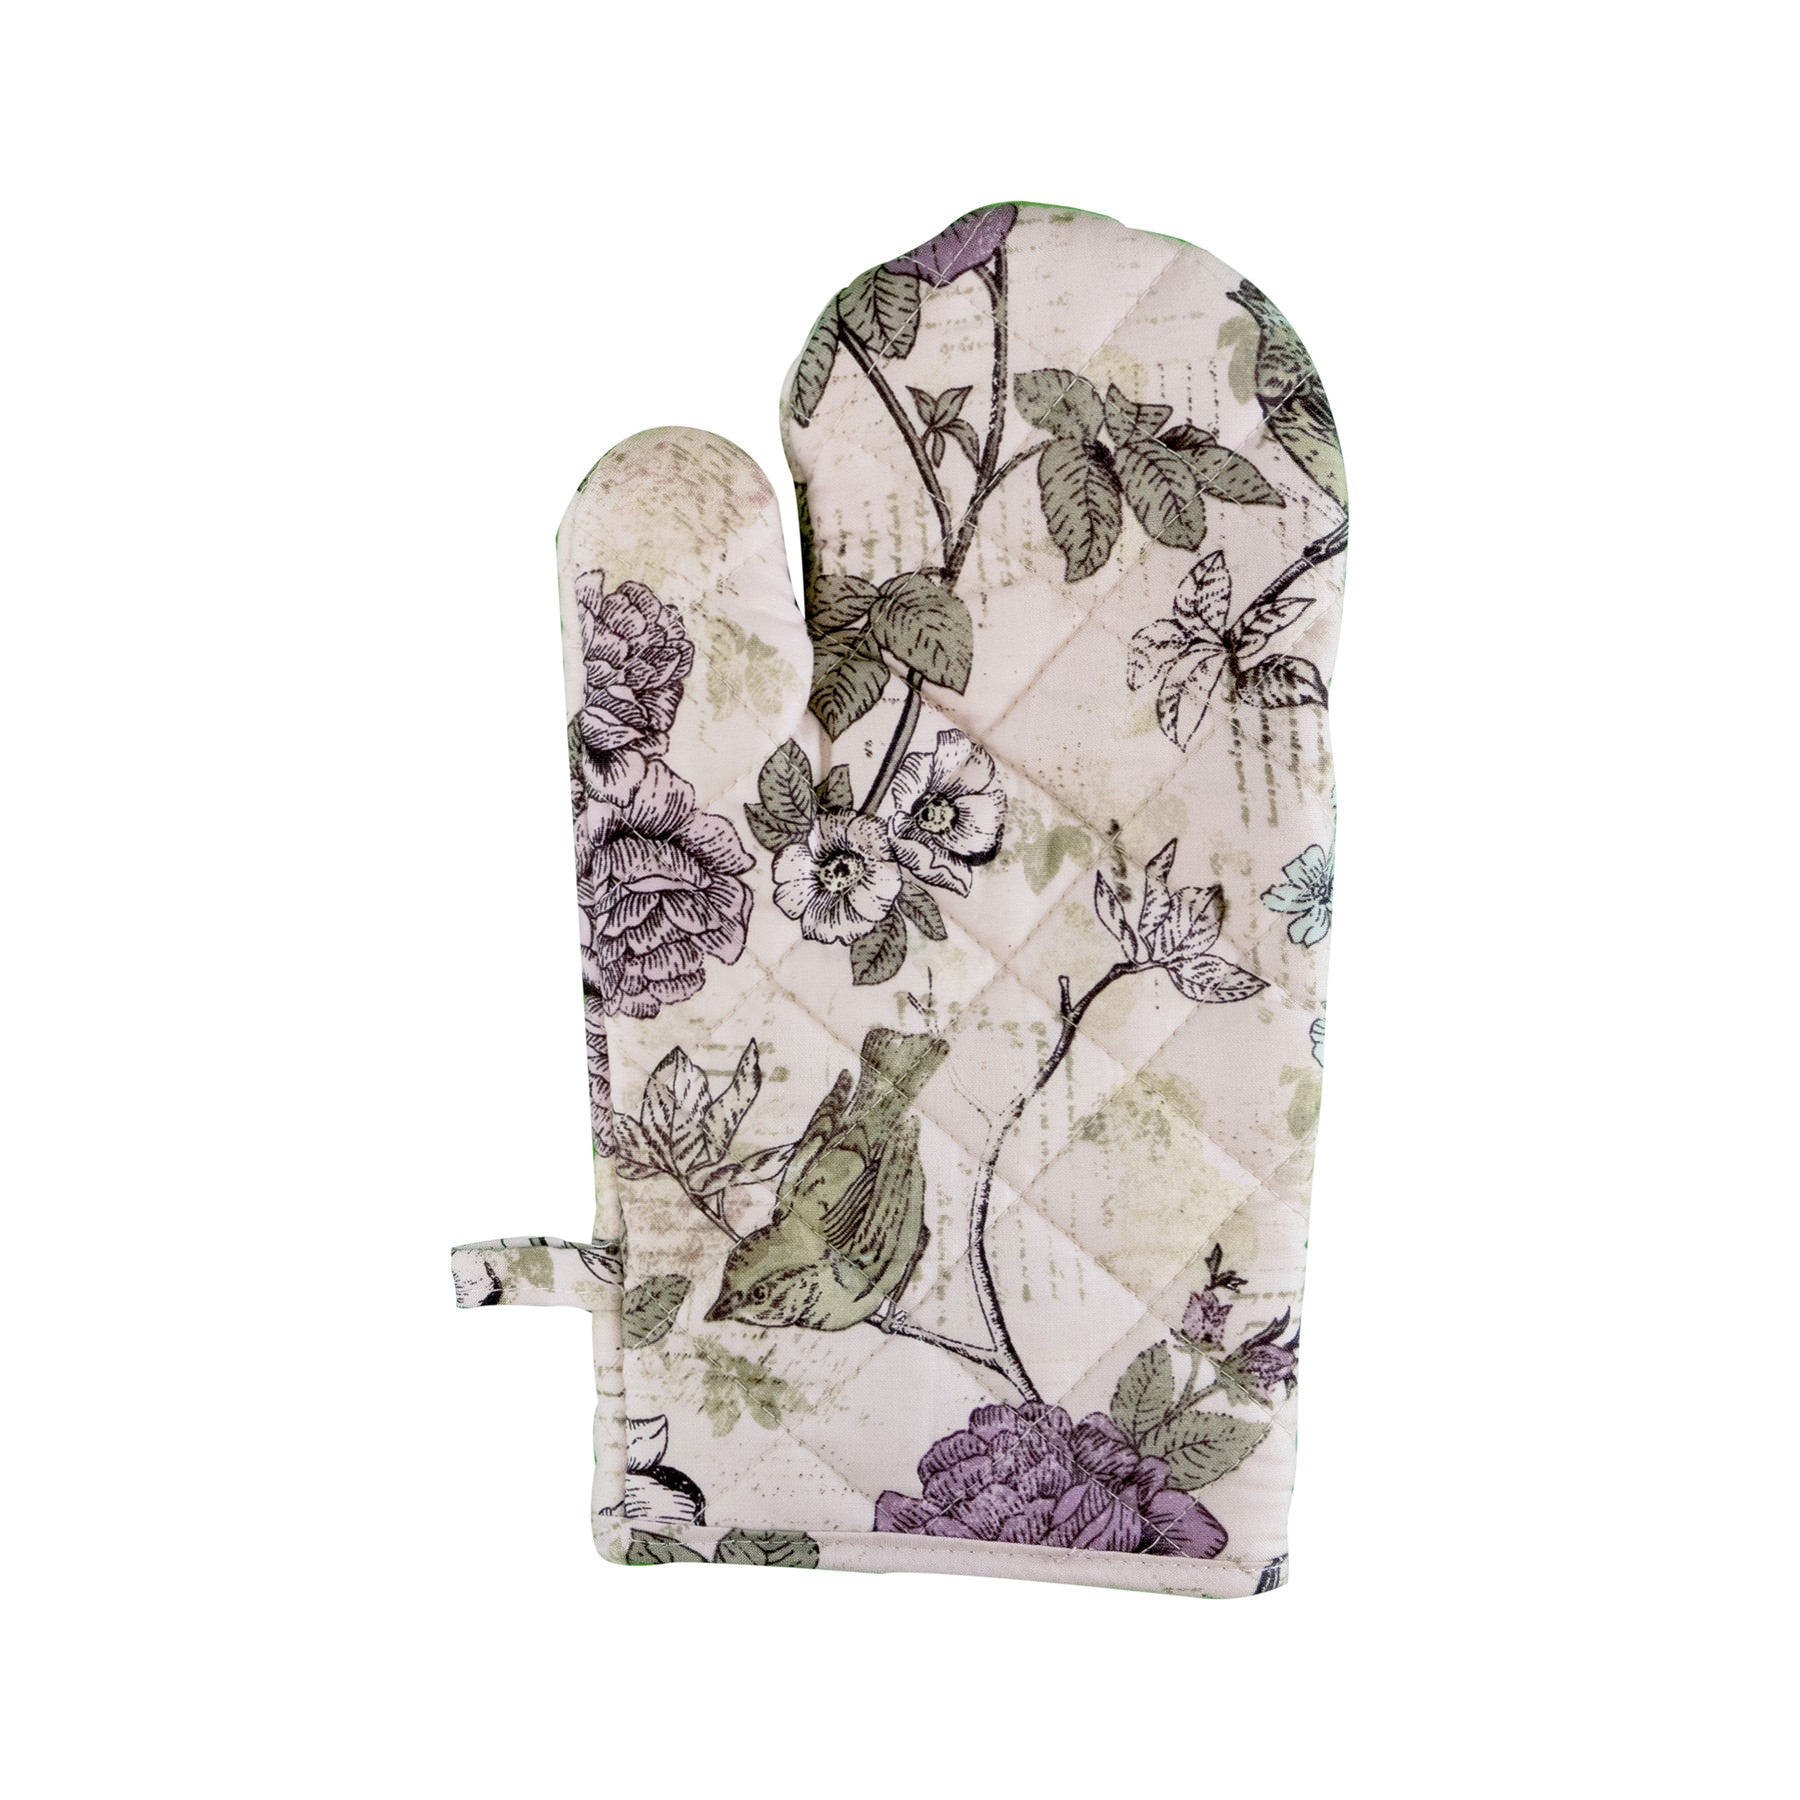 Stitch & Sparkle OVEN MITT 1 Piece Pack, Heat Resistant, 100% Cotton, Aviary, Words Bird Lavender